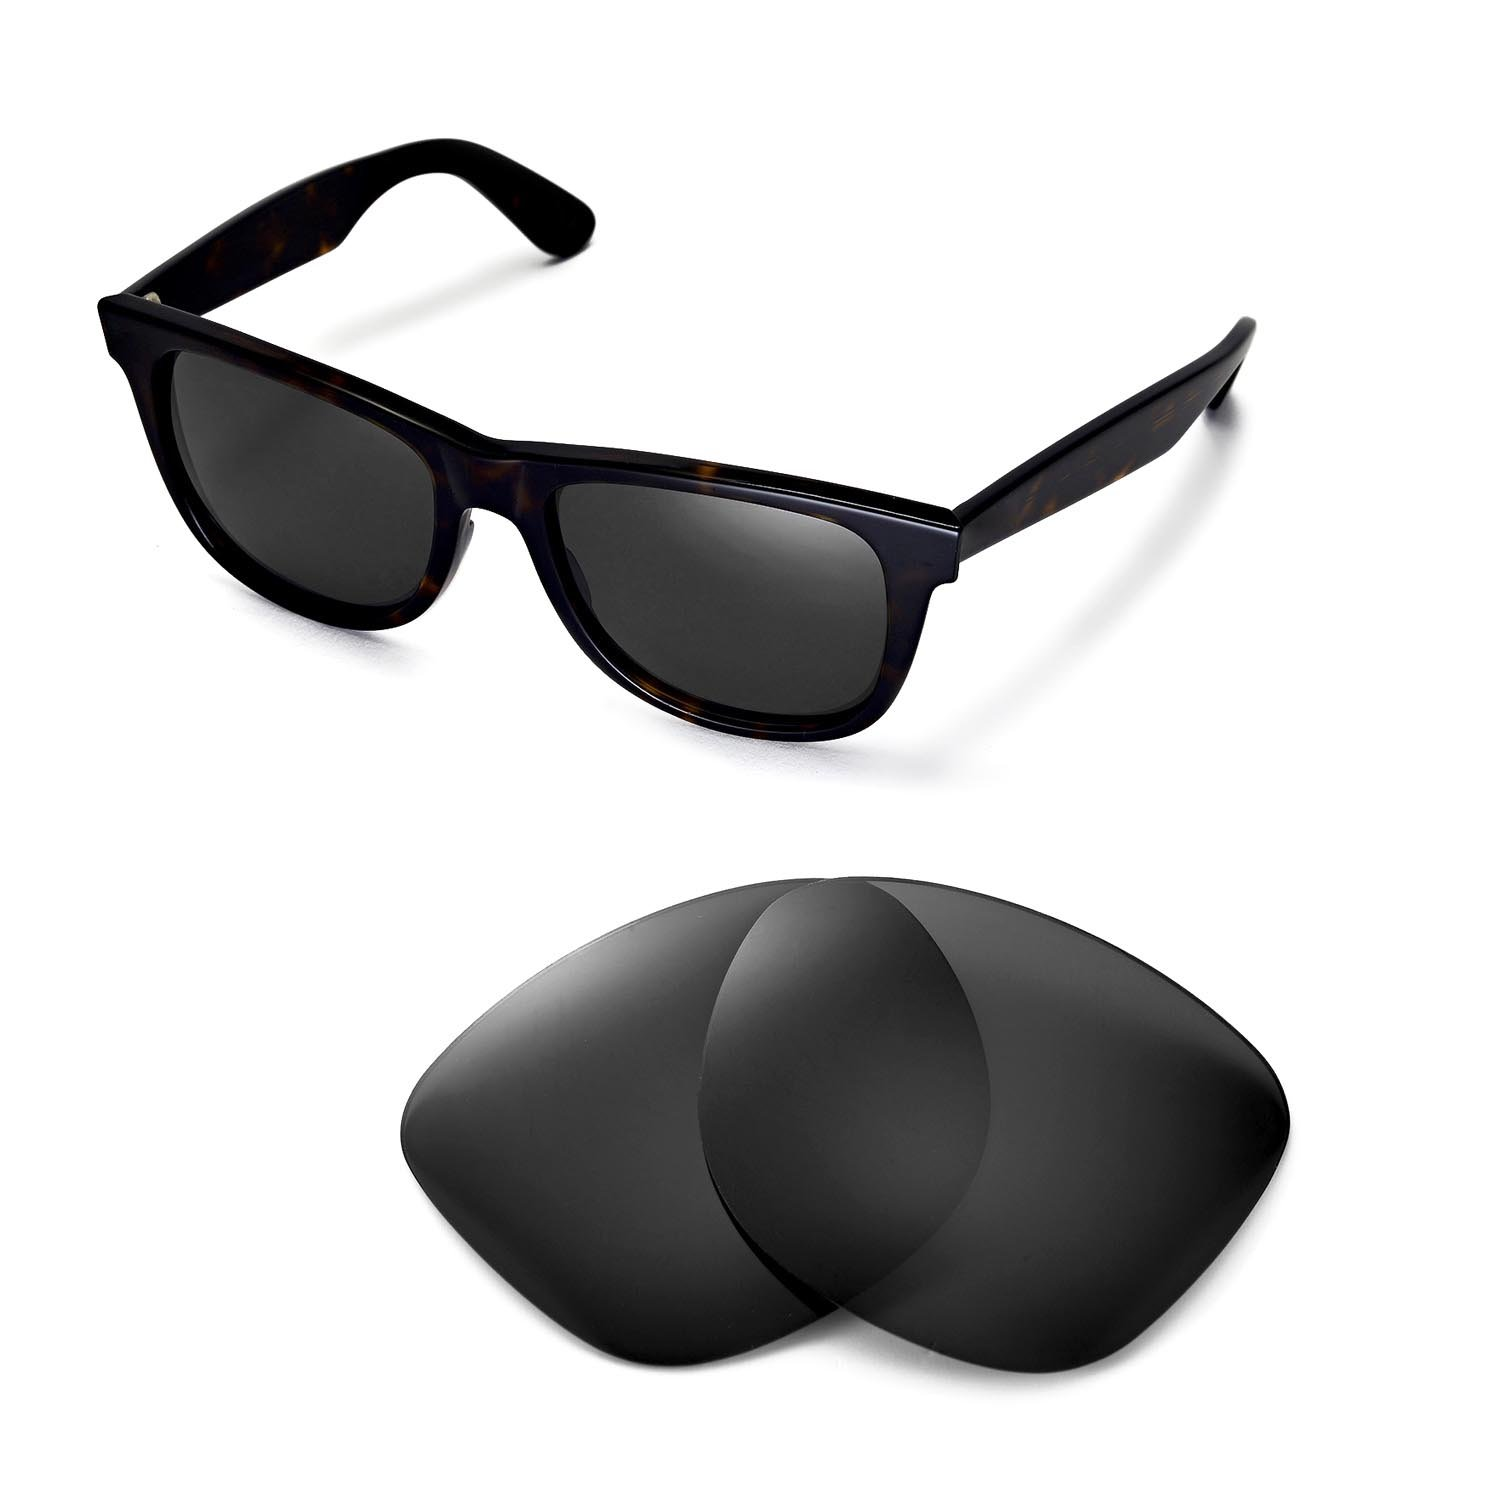 56b655826e Amazon.com  Walleva Replacement Lenses for Ray-Ban Wayfarer RB2140 54mm  Sunglasses - Multiple Options Available(Black - Polirazed)  Clothing